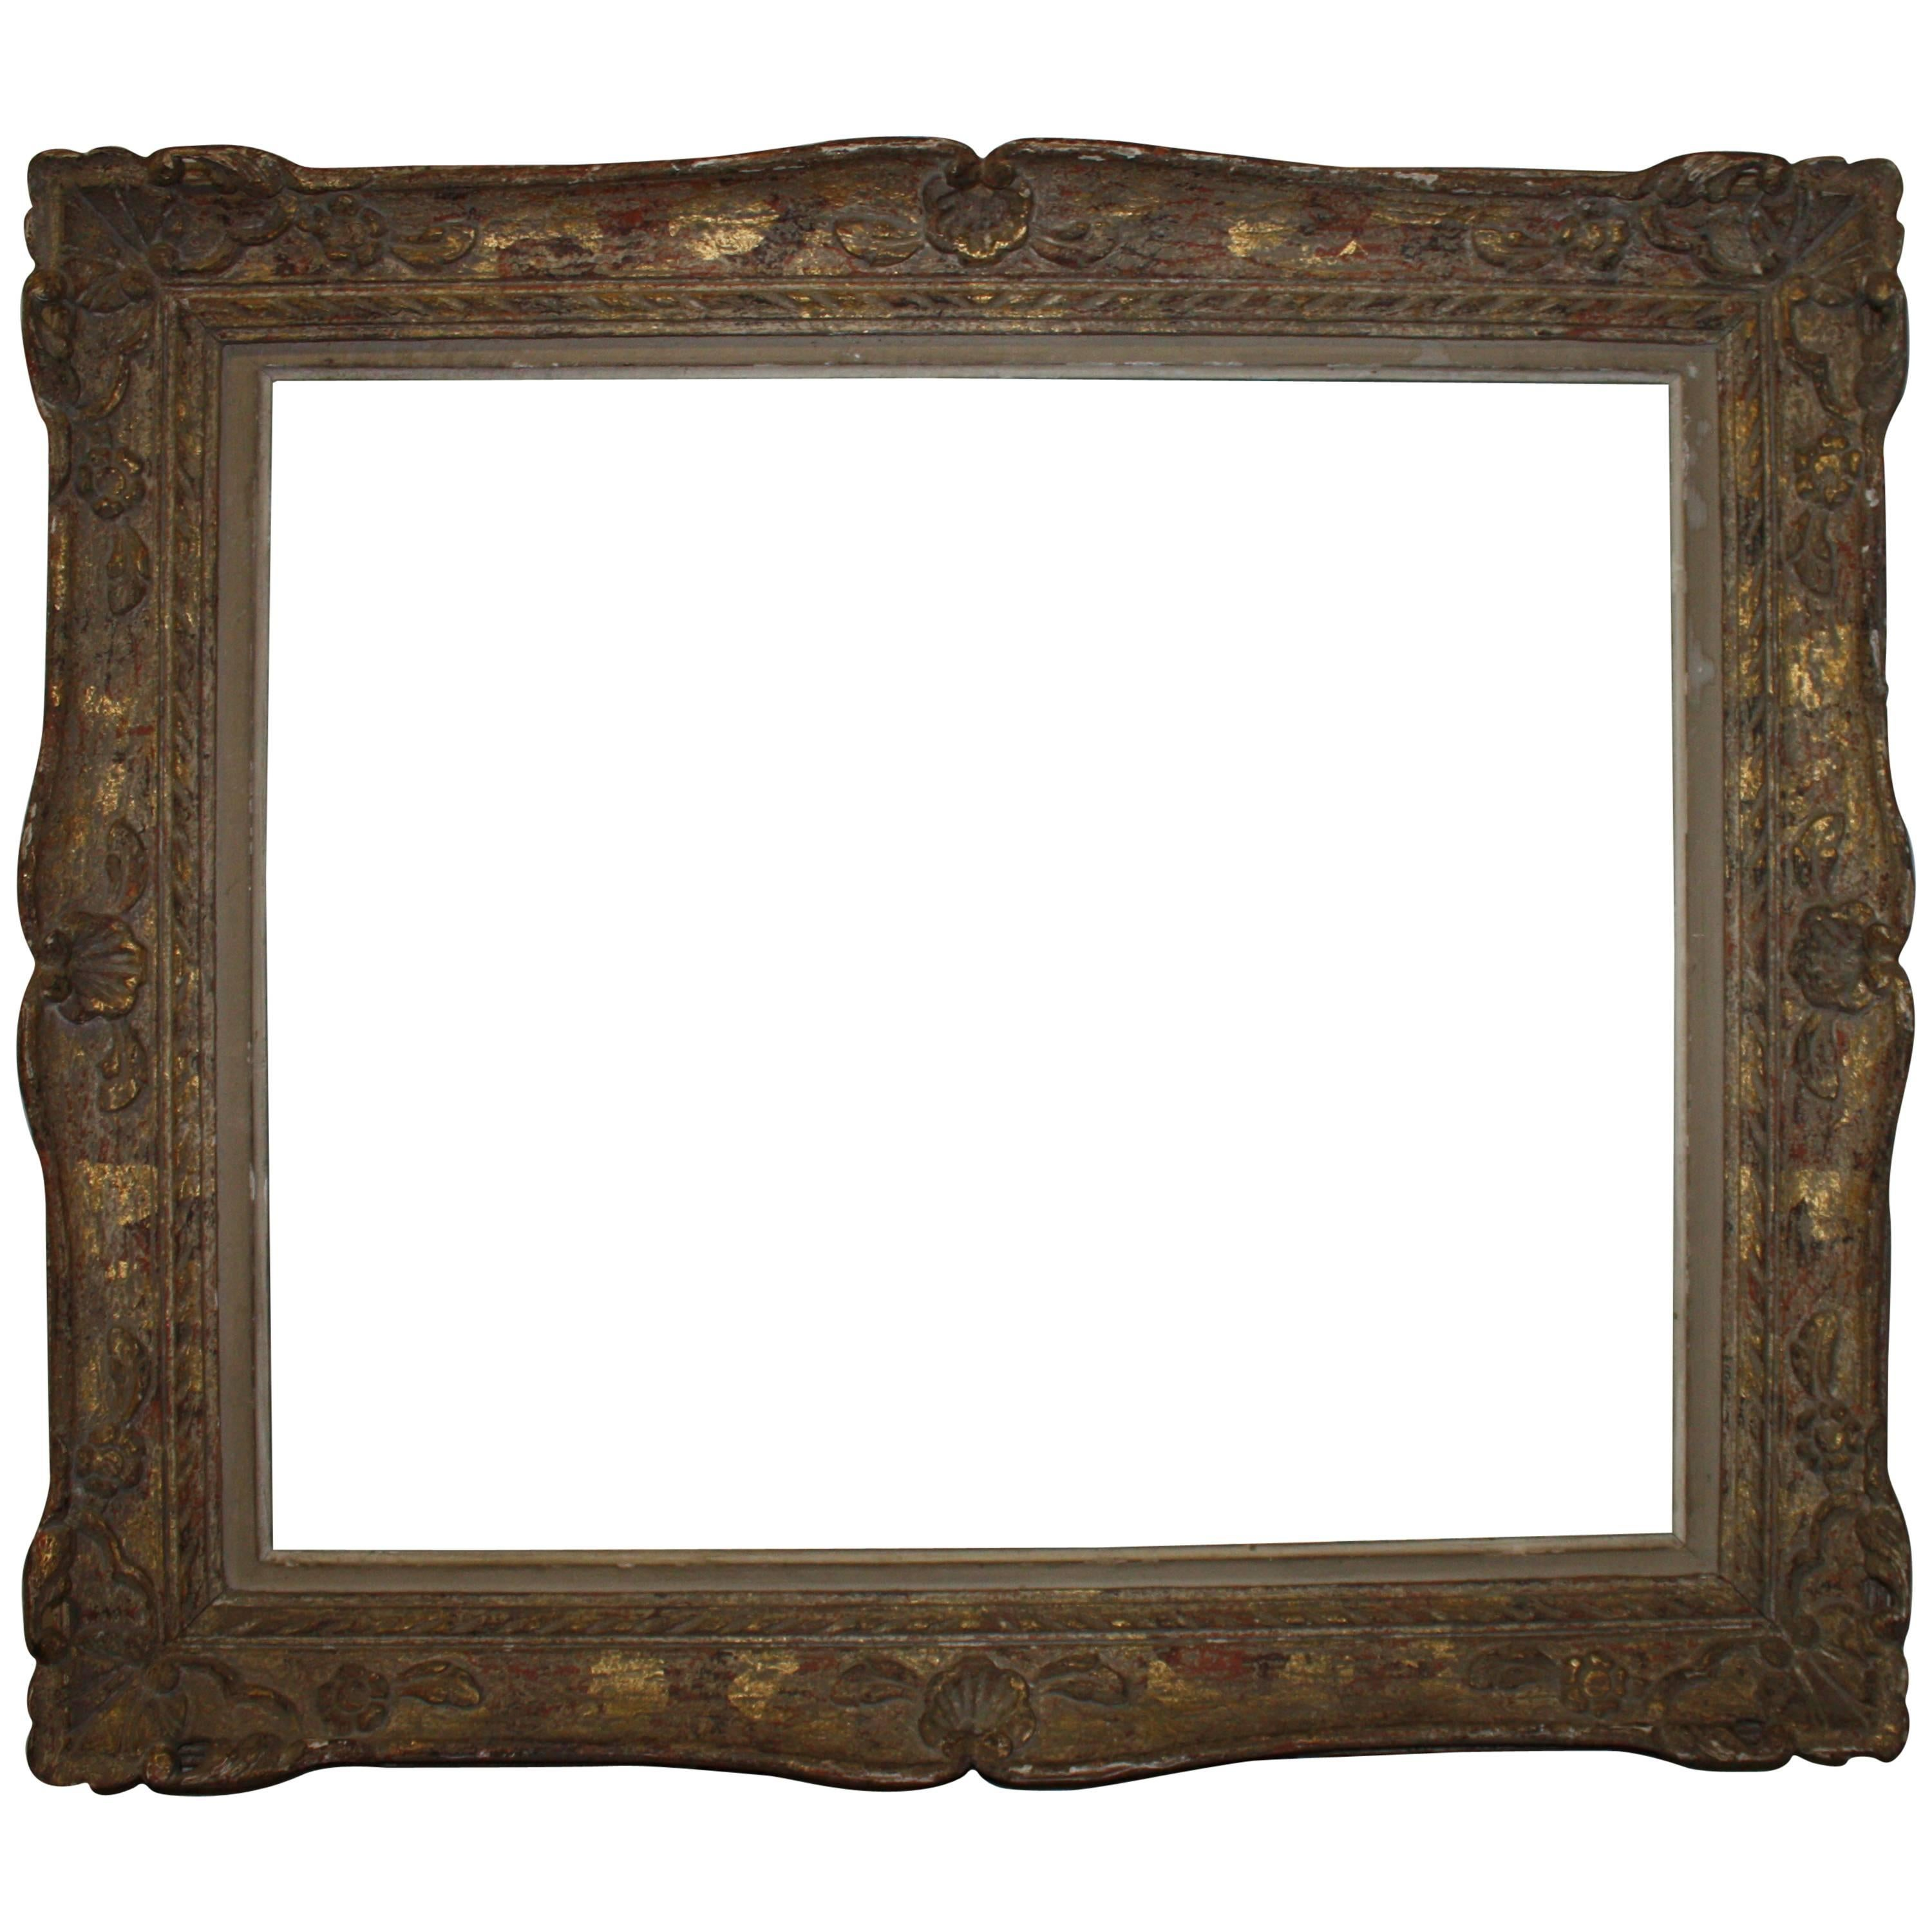 Museum quality 19th century hand carved and gilded frame for sale museum quality 19th century hand carved and gilded frame for sale at 1stdibs jeuxipadfo Images